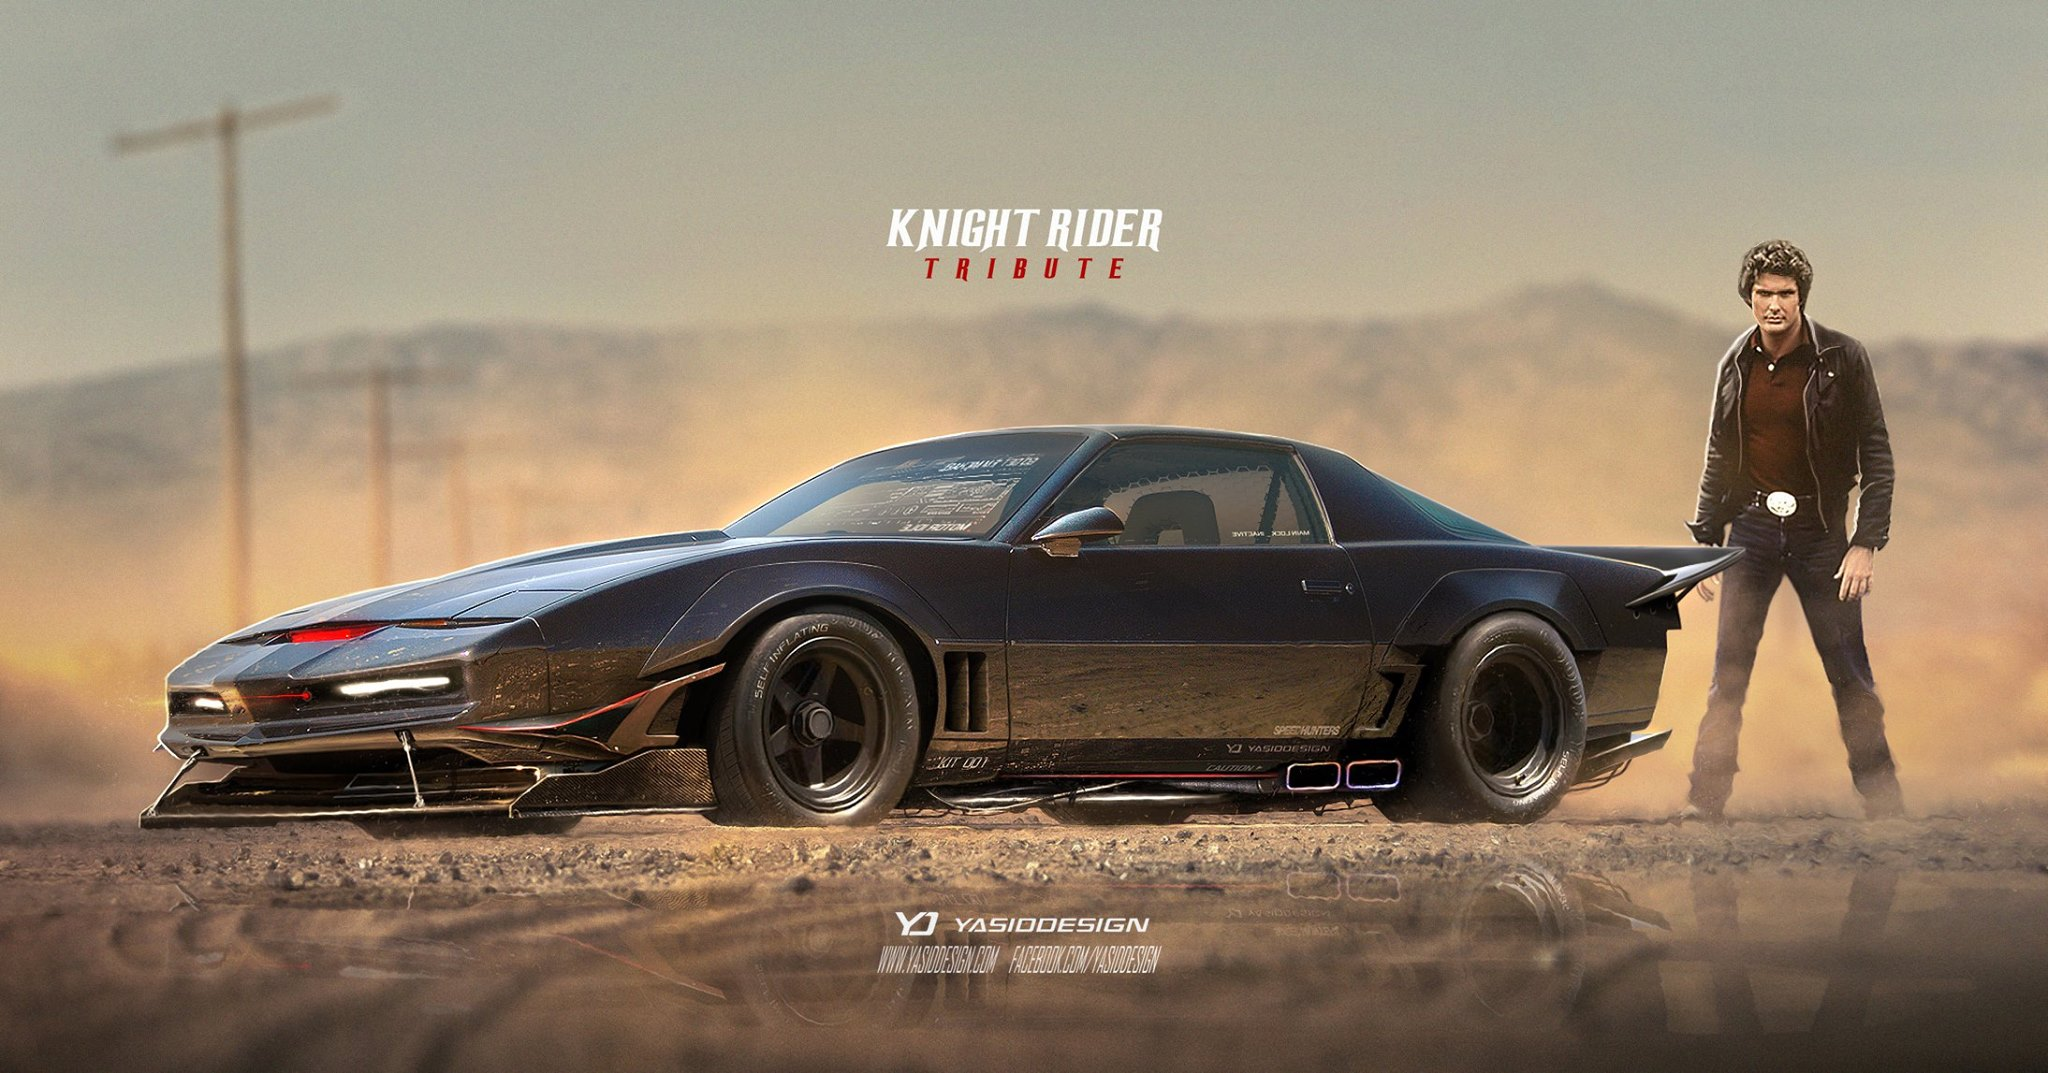 knight rider kitt car gets a futuristic makeover with racing spoilers autoevolution. Black Bedroom Furniture Sets. Home Design Ideas